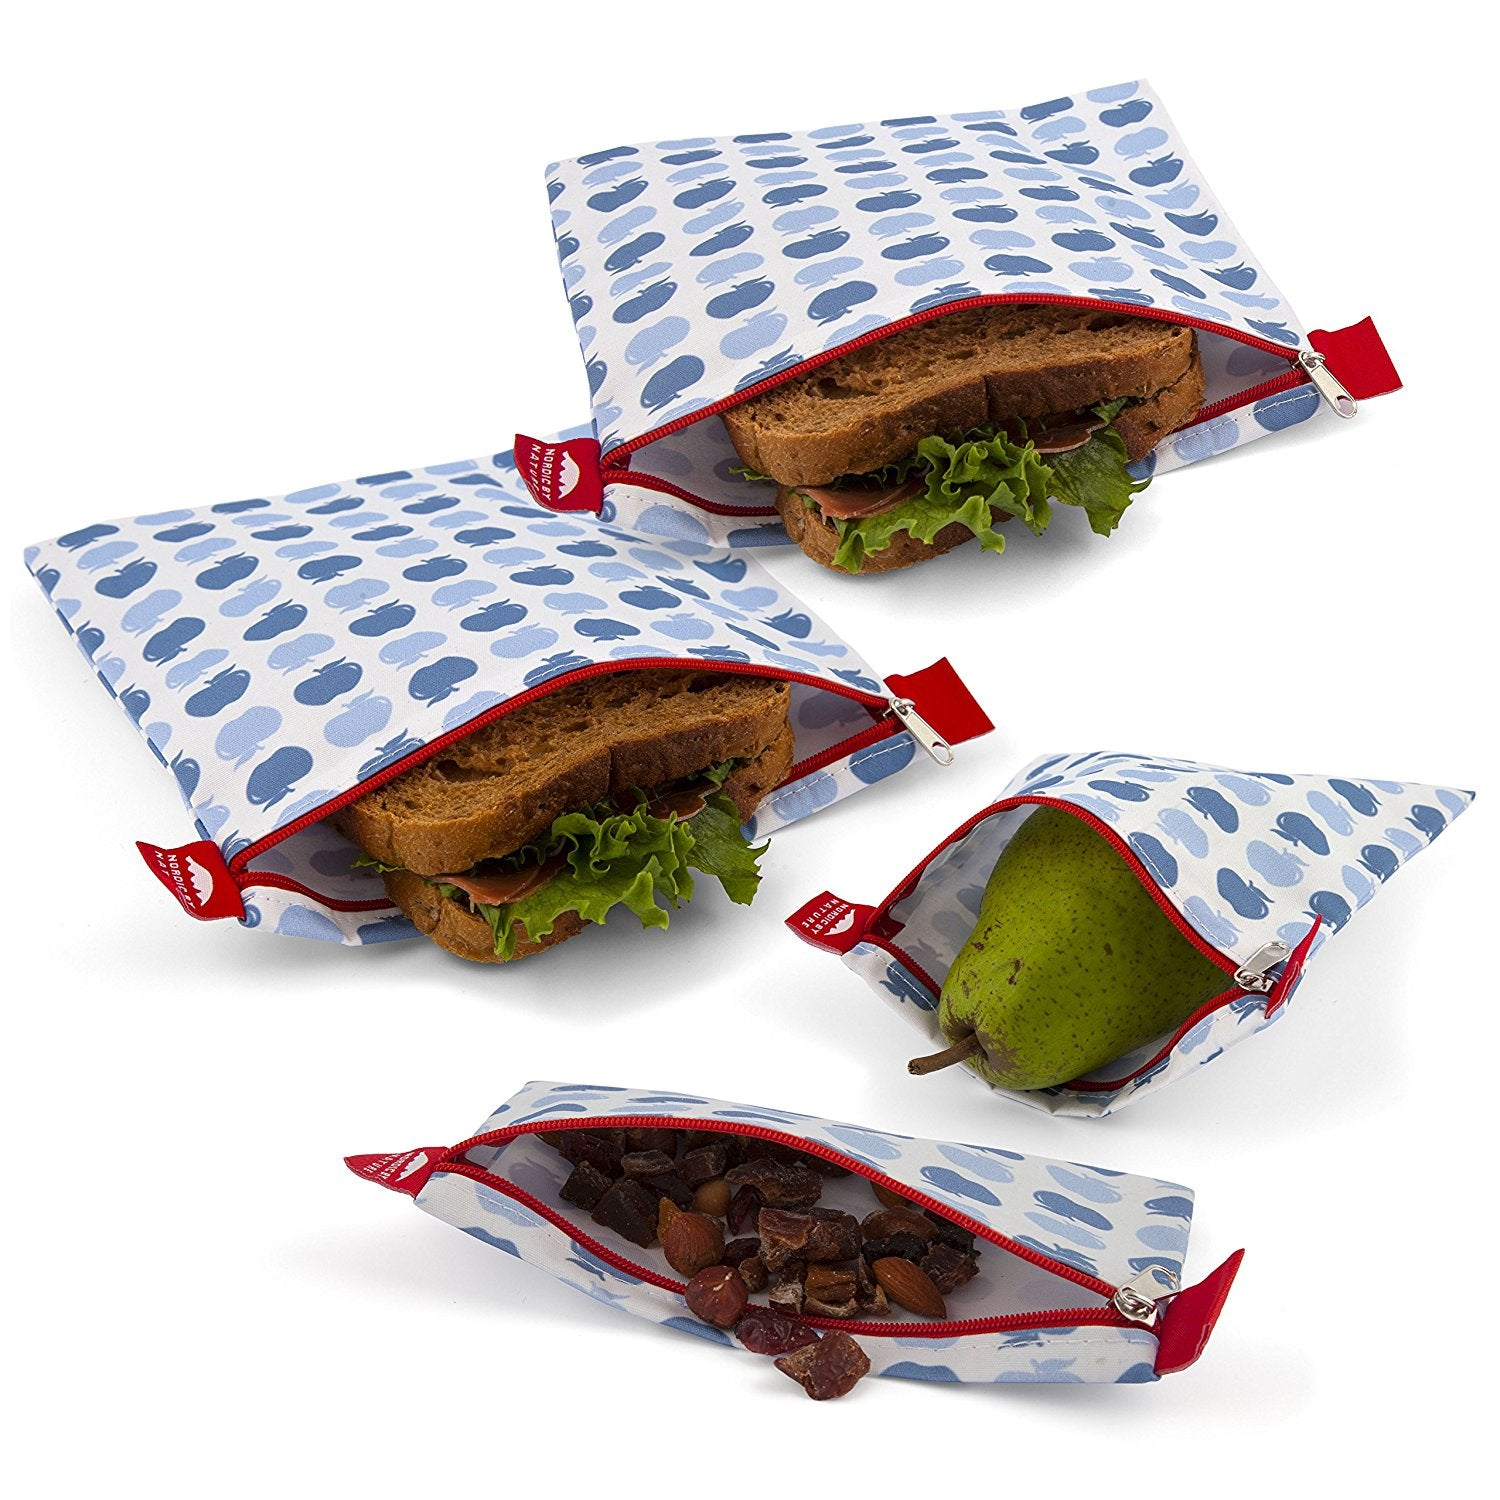 PREMIUM SANDWICH SET (4) - APPLE